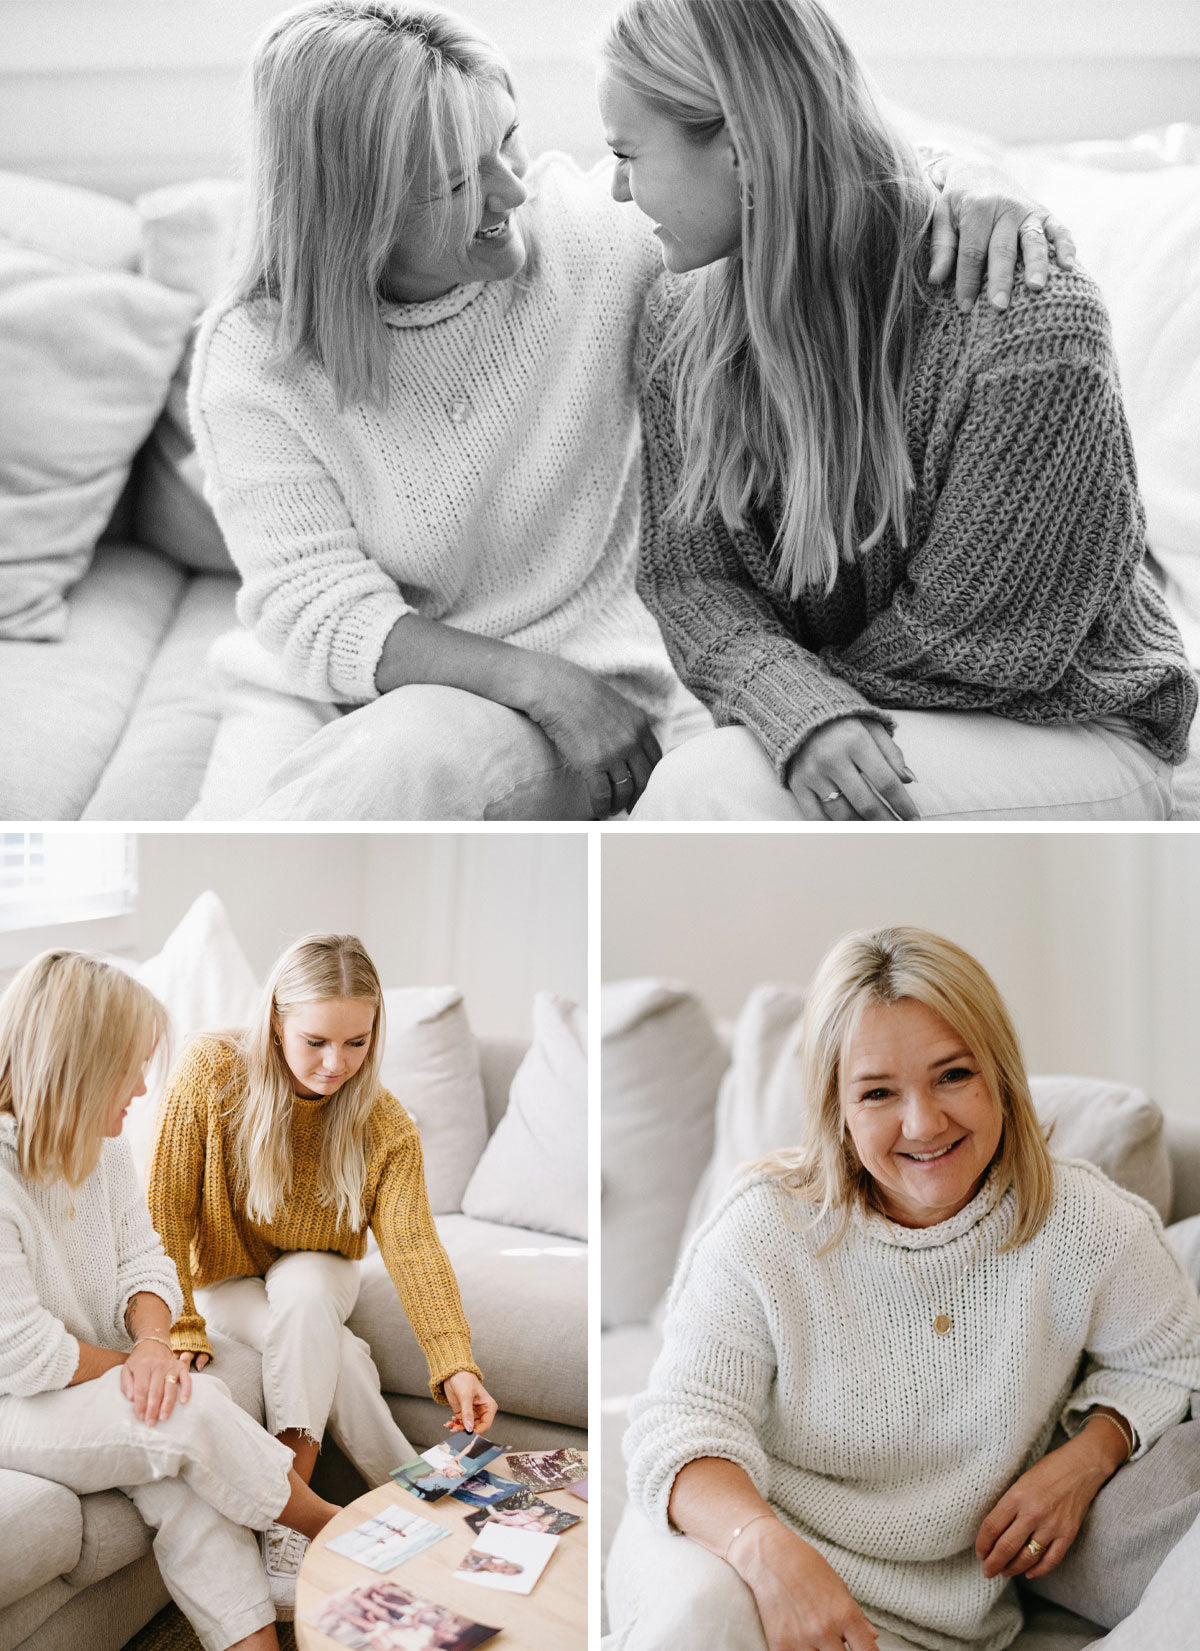 A grid of Julia and her daughter sitting on a cream coloured couch looking at photos and hugging each other